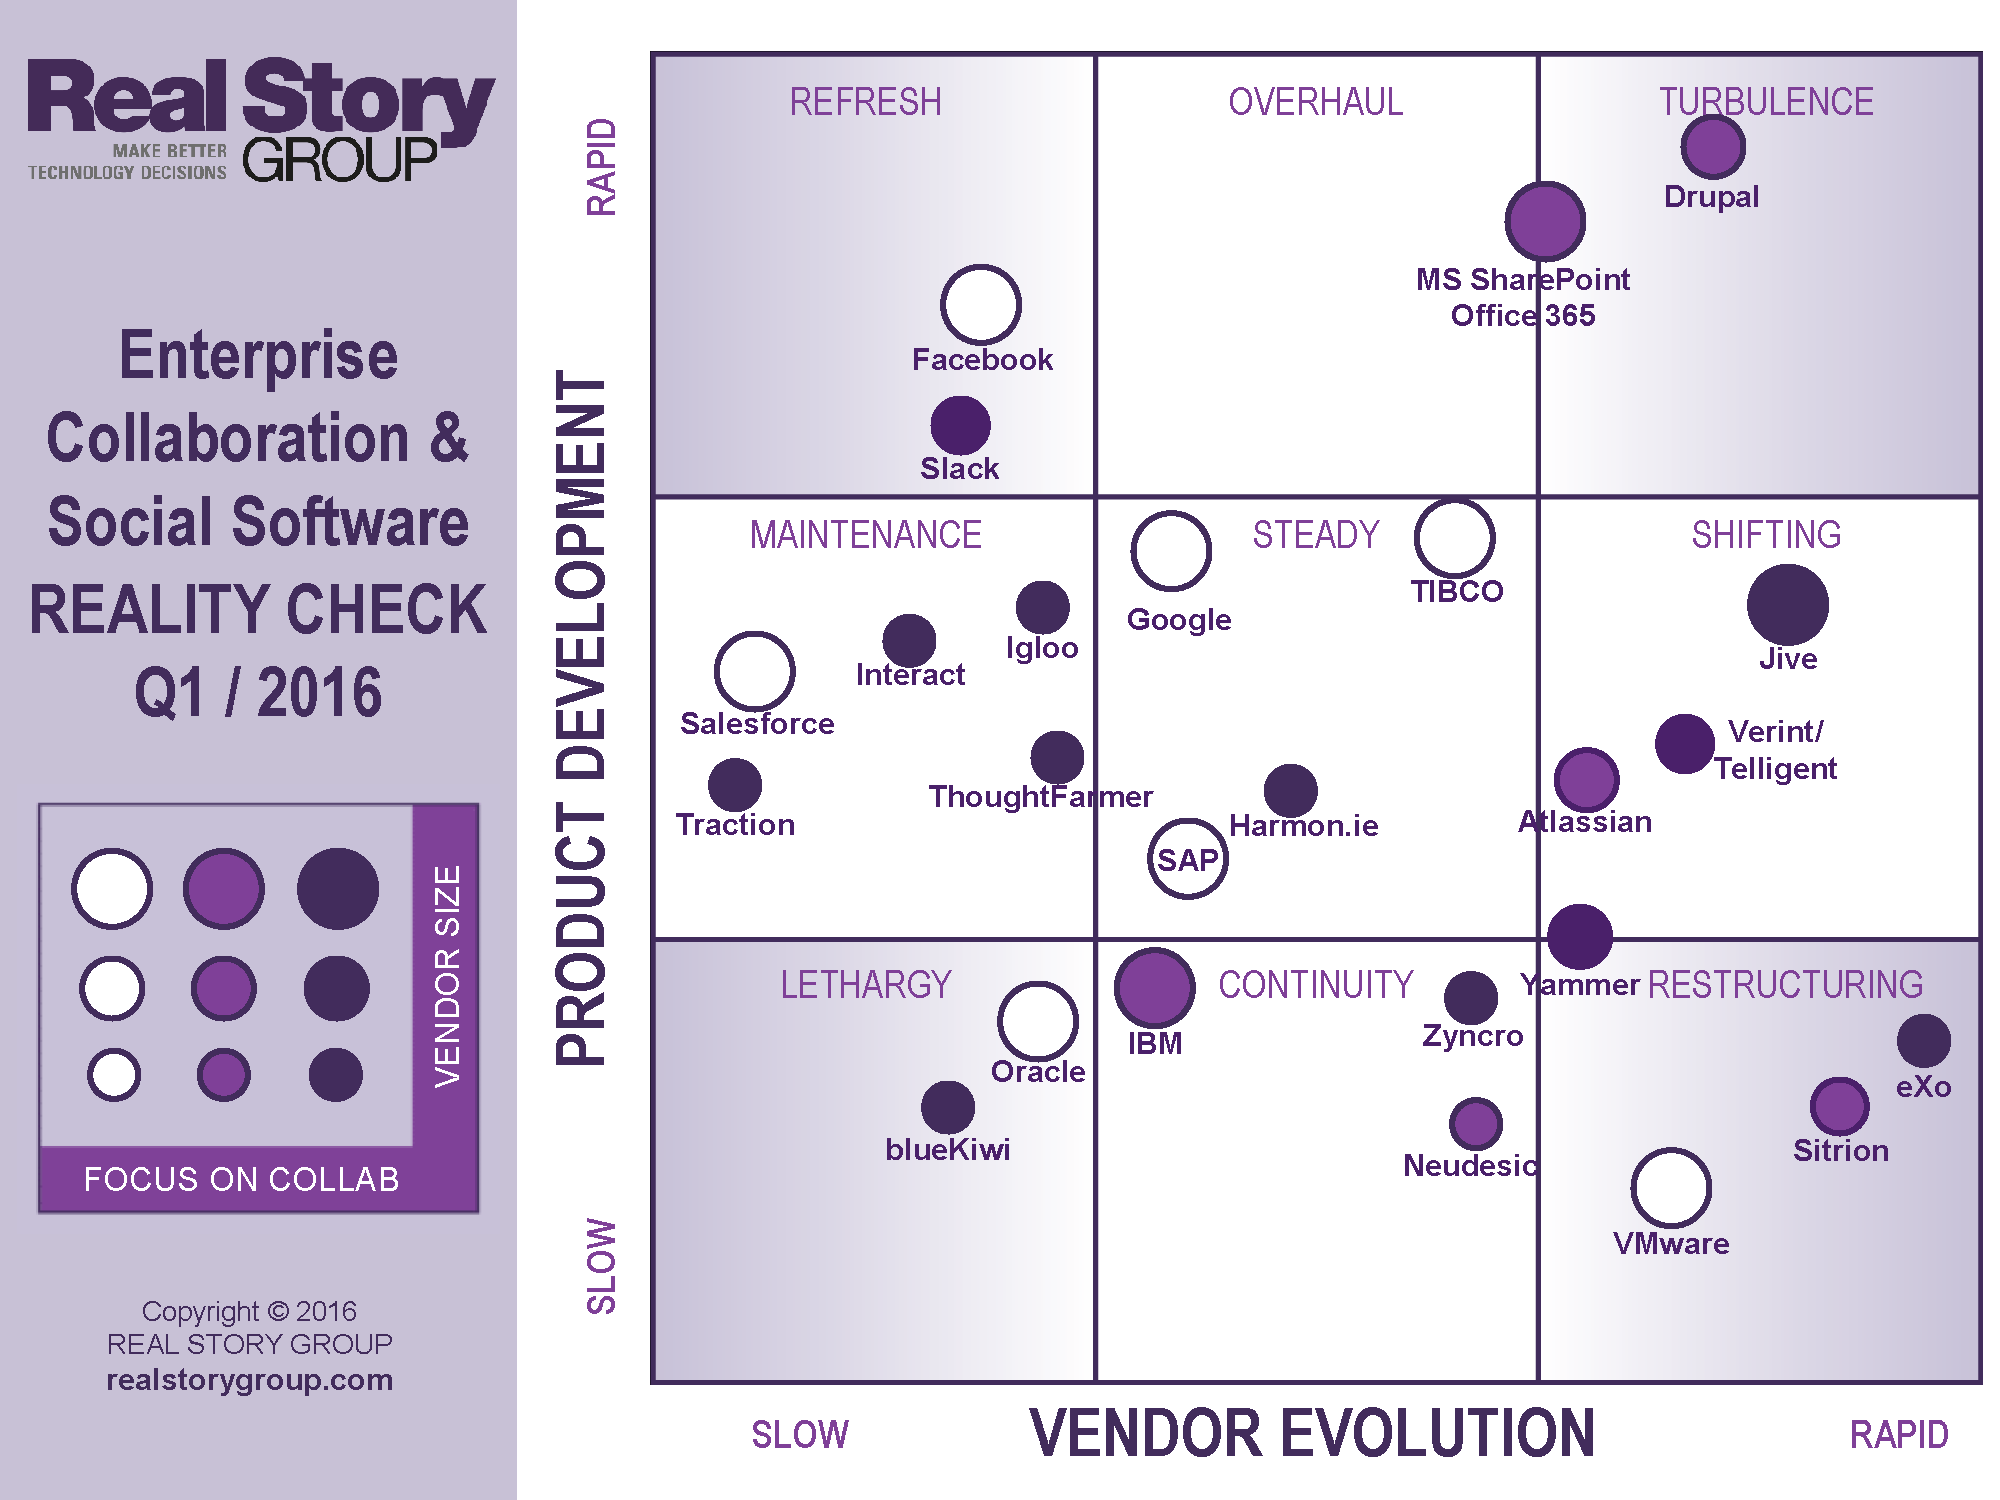 RSG 2016 Enterprise Collaboration and Social Software Market Analysis